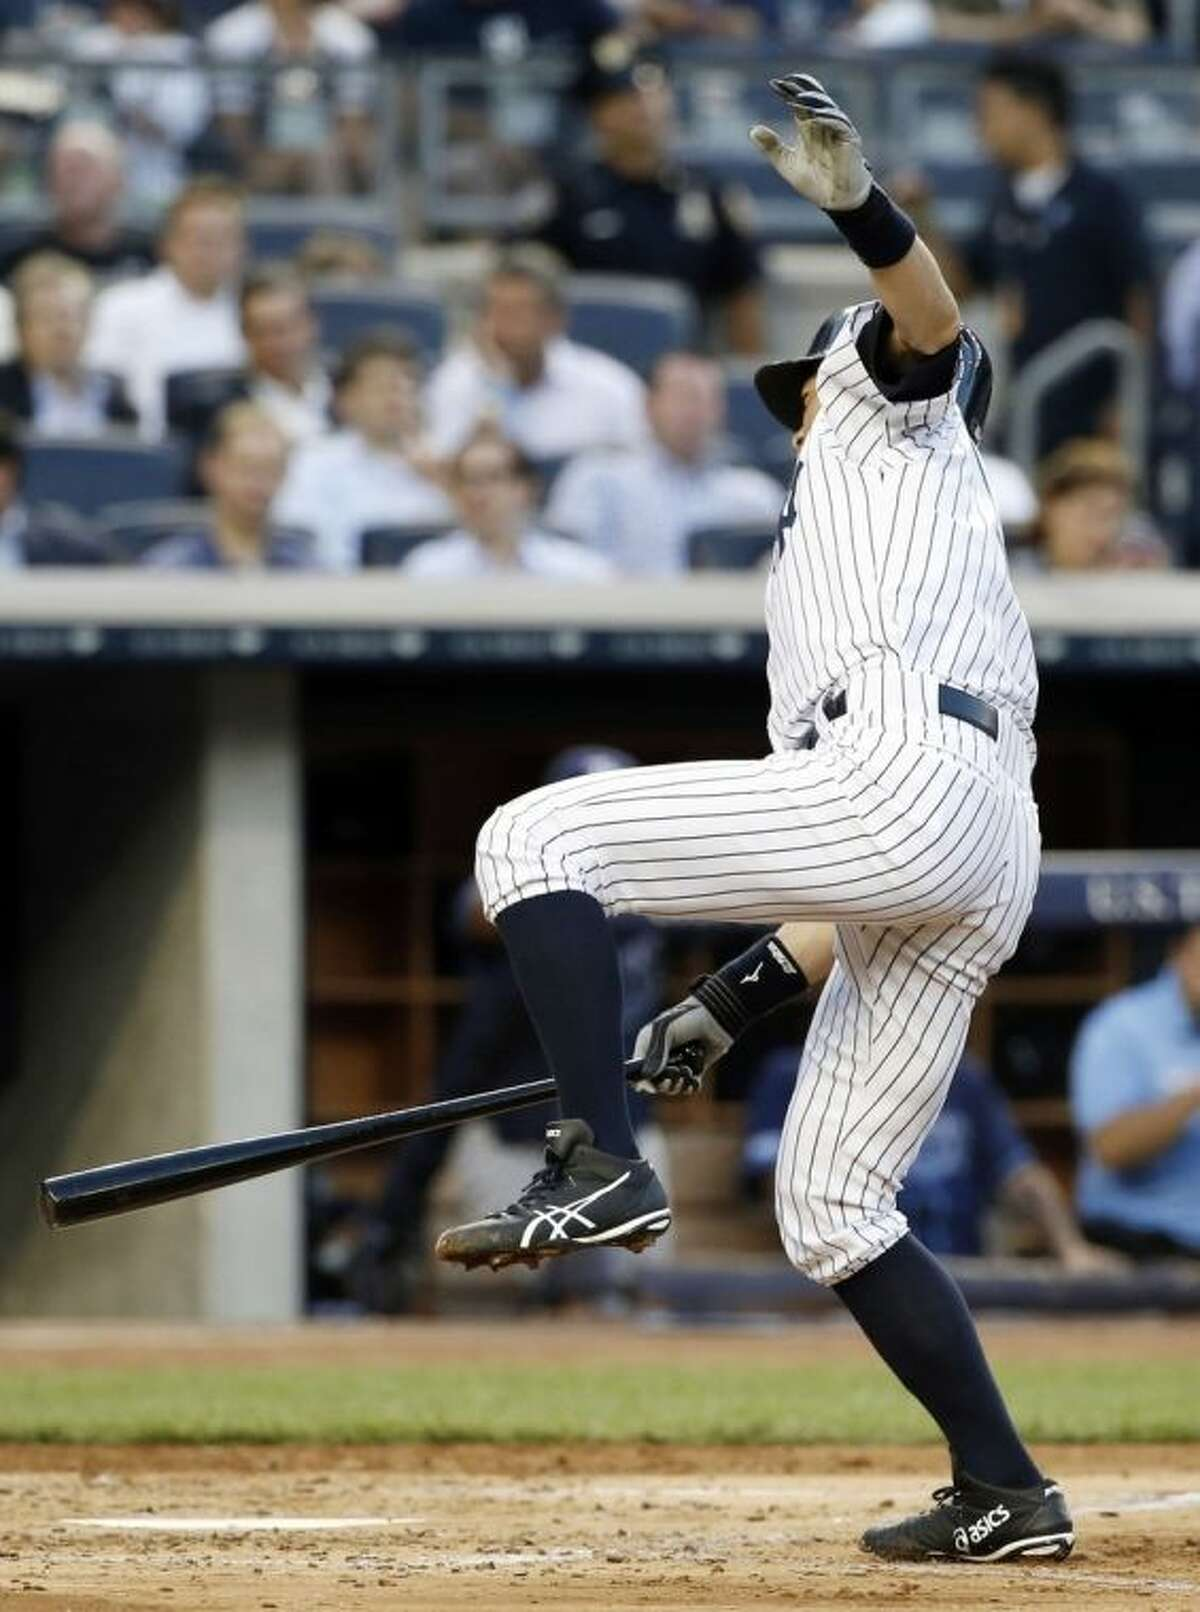 New York Yankees Ichiro Suzuki leaps after he was hit by a third-inning pitch thrown by Tampa Bay Rays starting pitcher Chris Archer in a baseball game at Yankee Stadium in New York, Monday, June 30, 2014. (AP Photo/Kathy Willens)